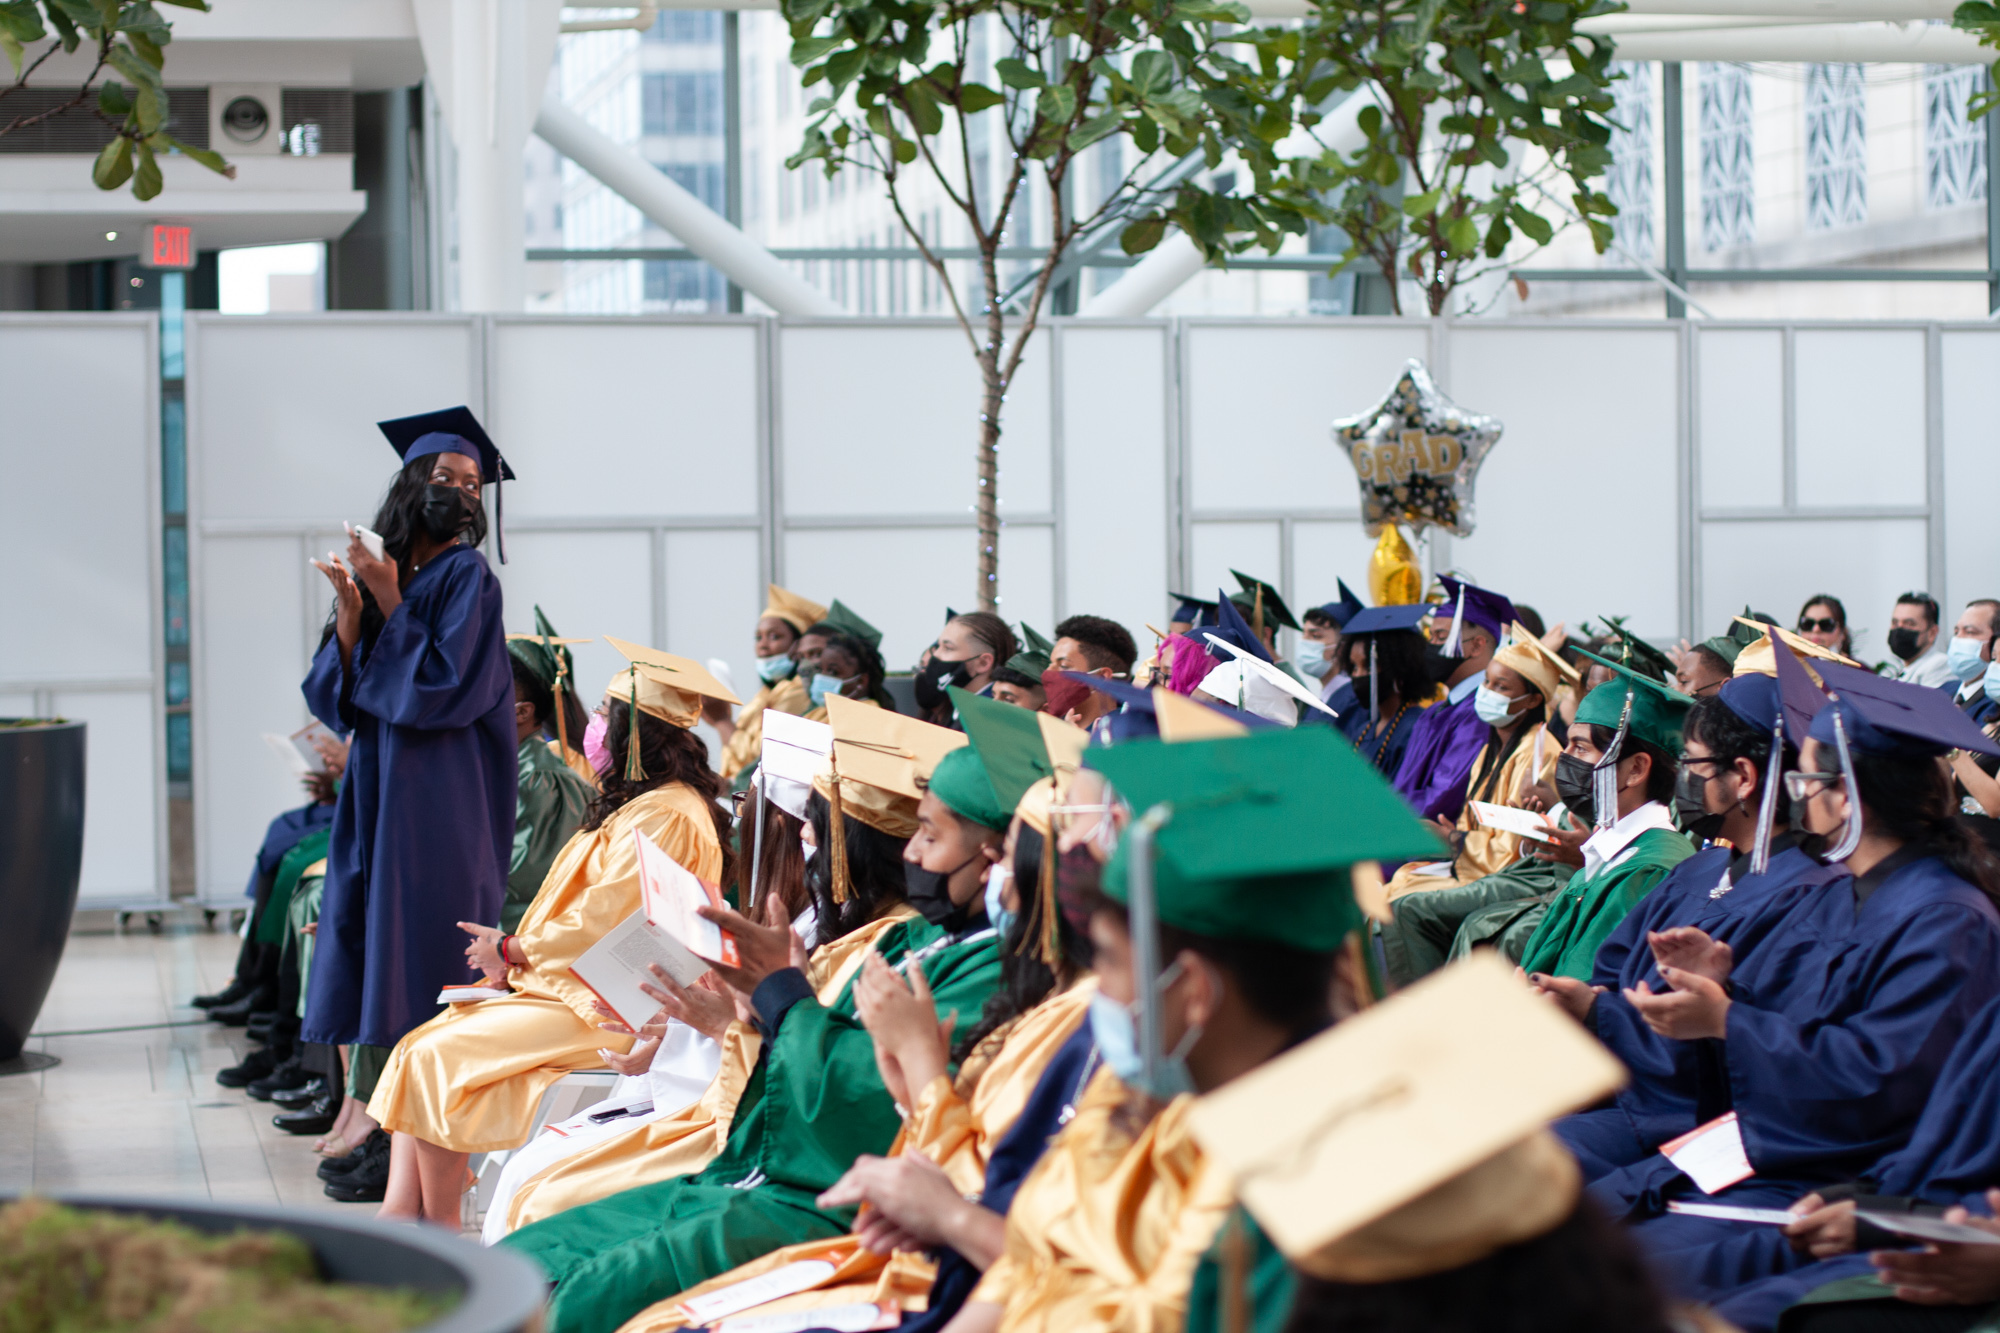 A girl in a blue cap and gown stands in a row of students wearing blue, gold and green graduation gowns and claps.